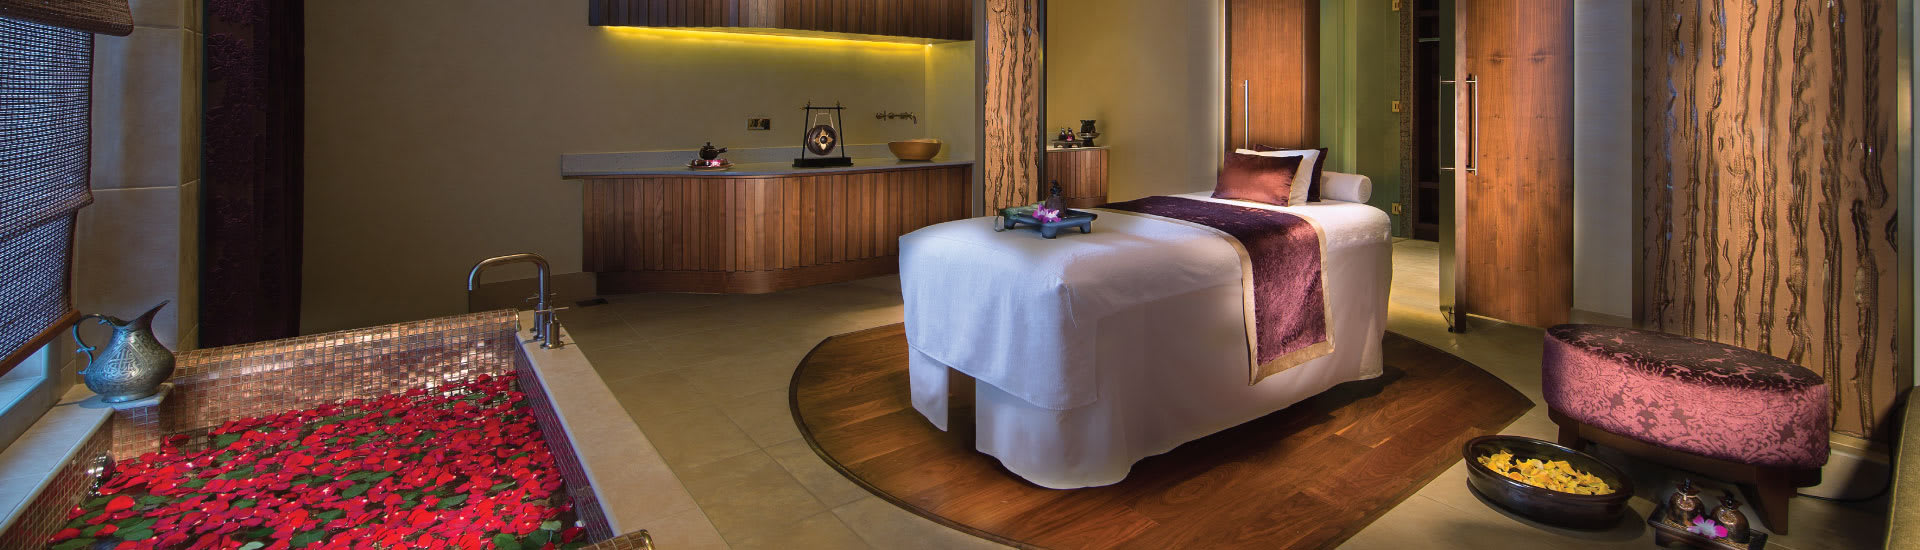 Single Treatment Room of the Resort in UAE